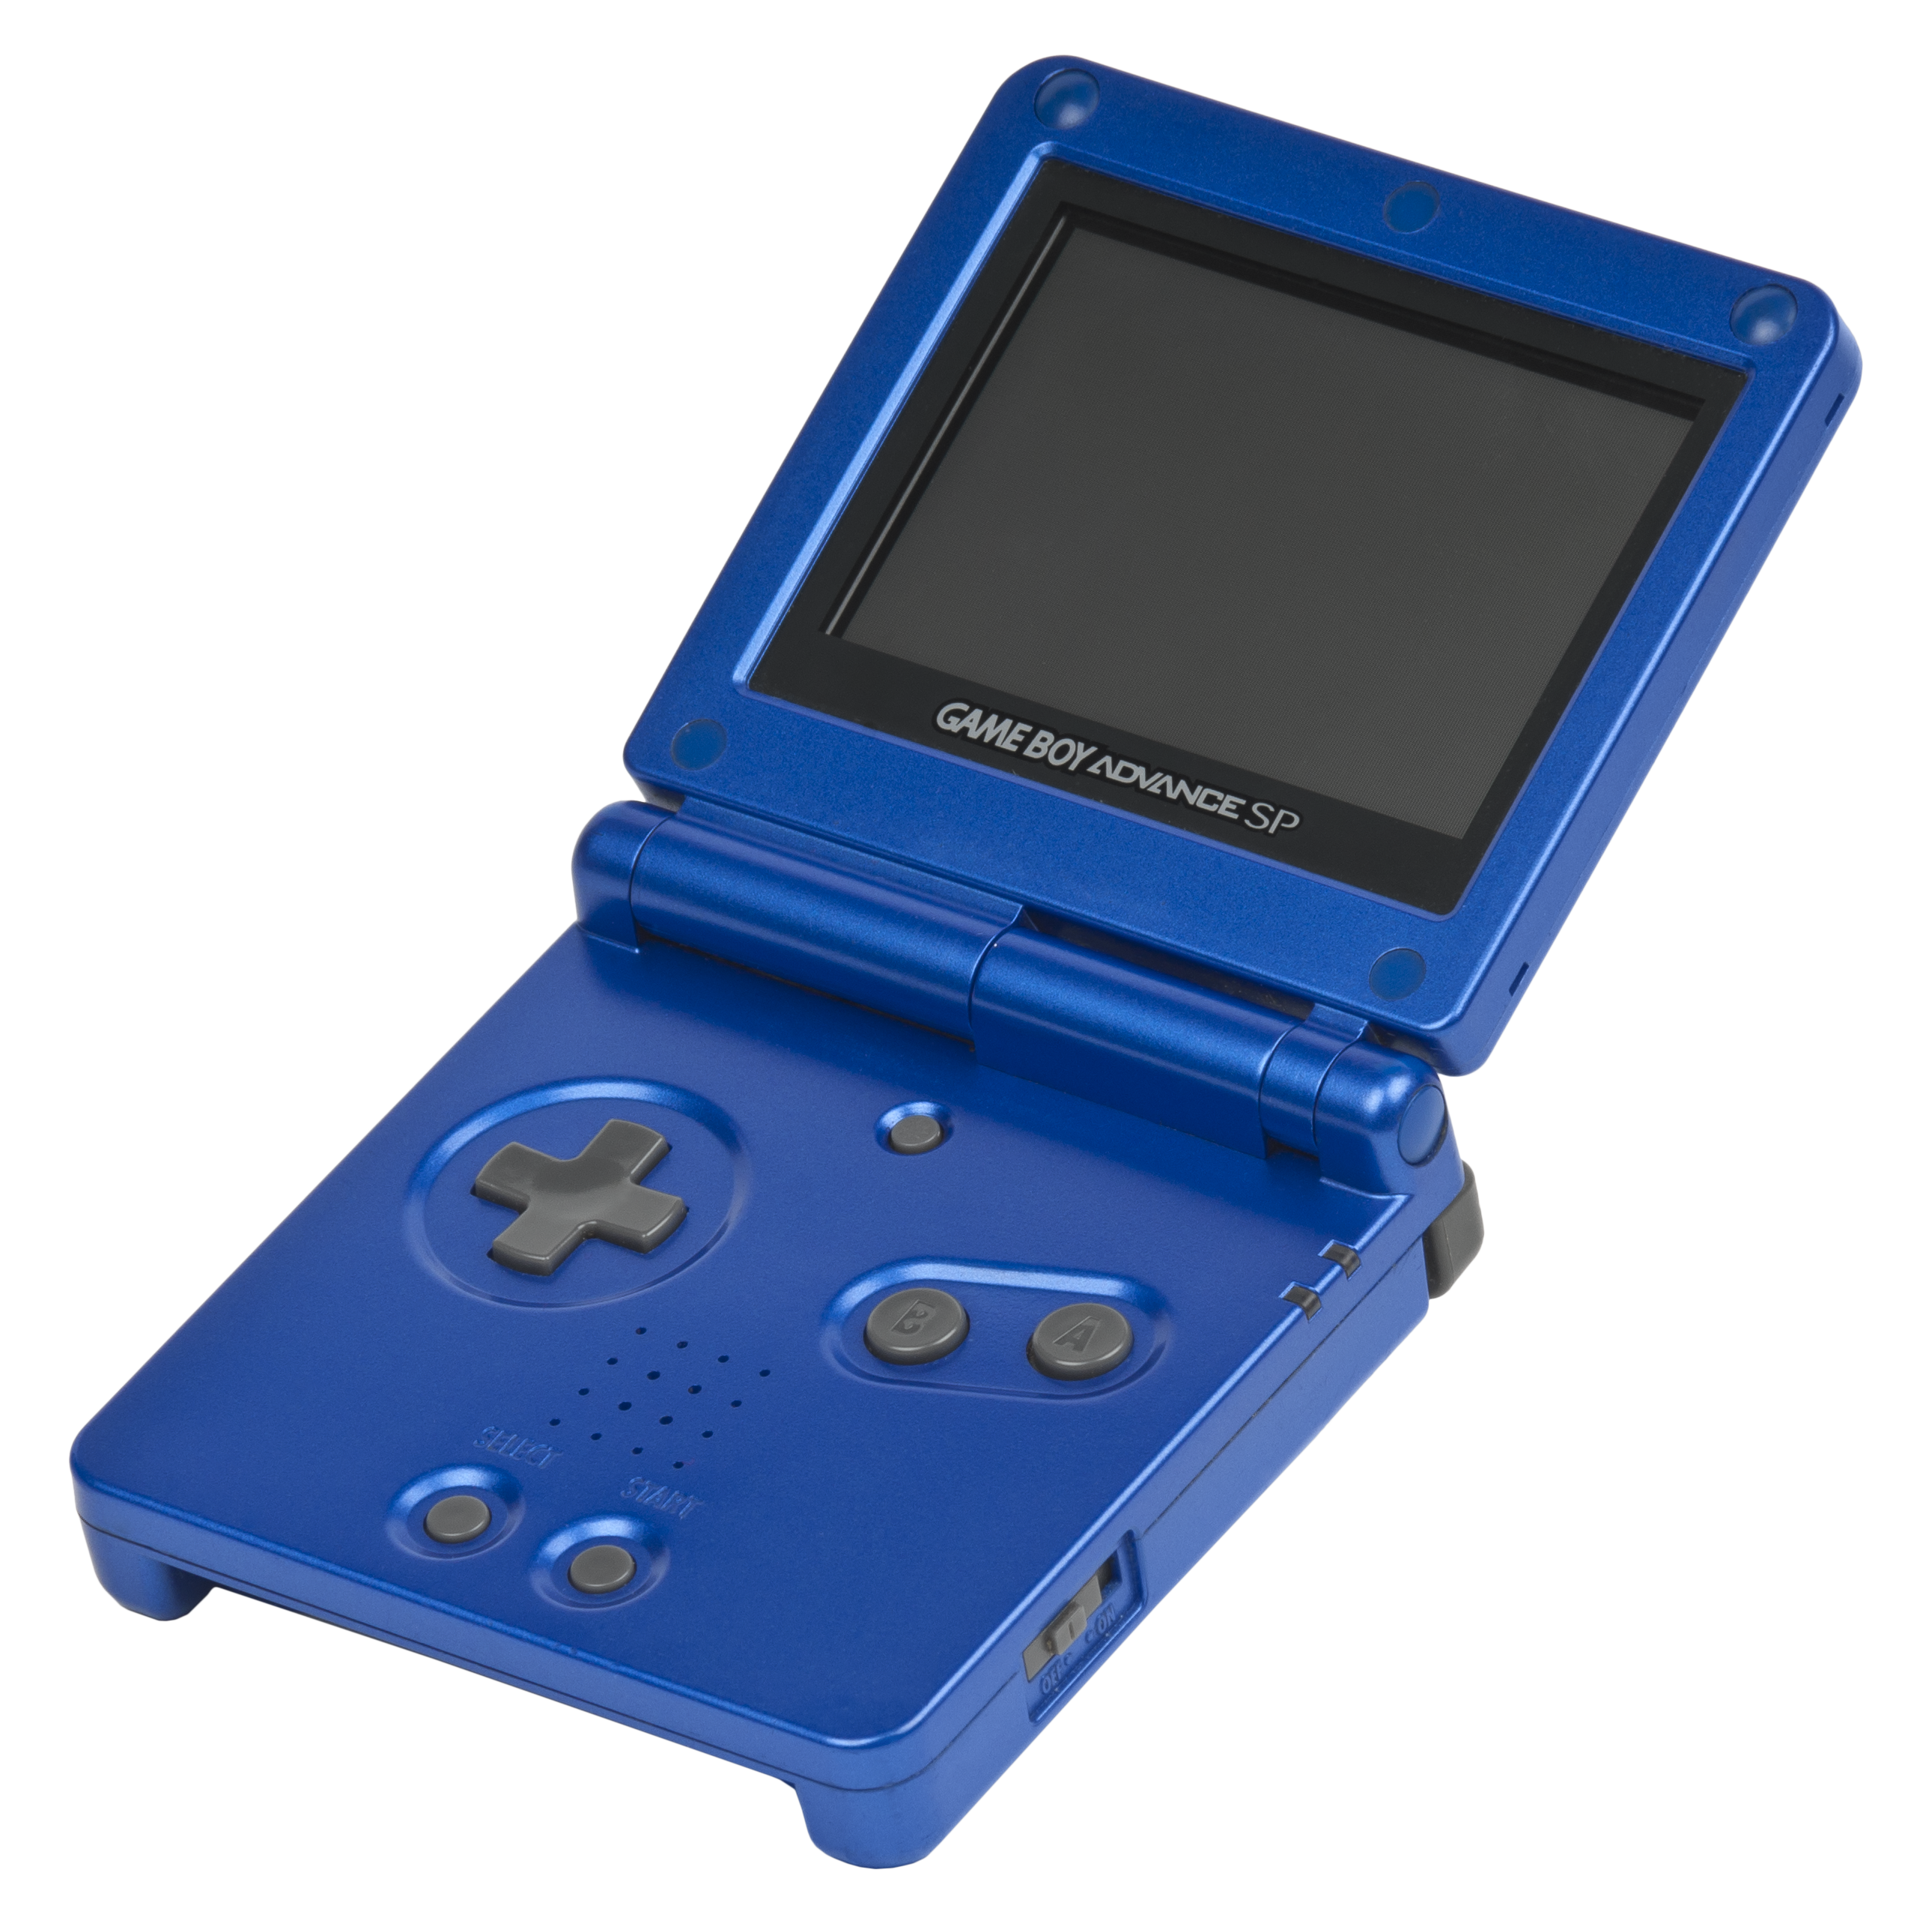 2ds transparent outline. File game boy advance